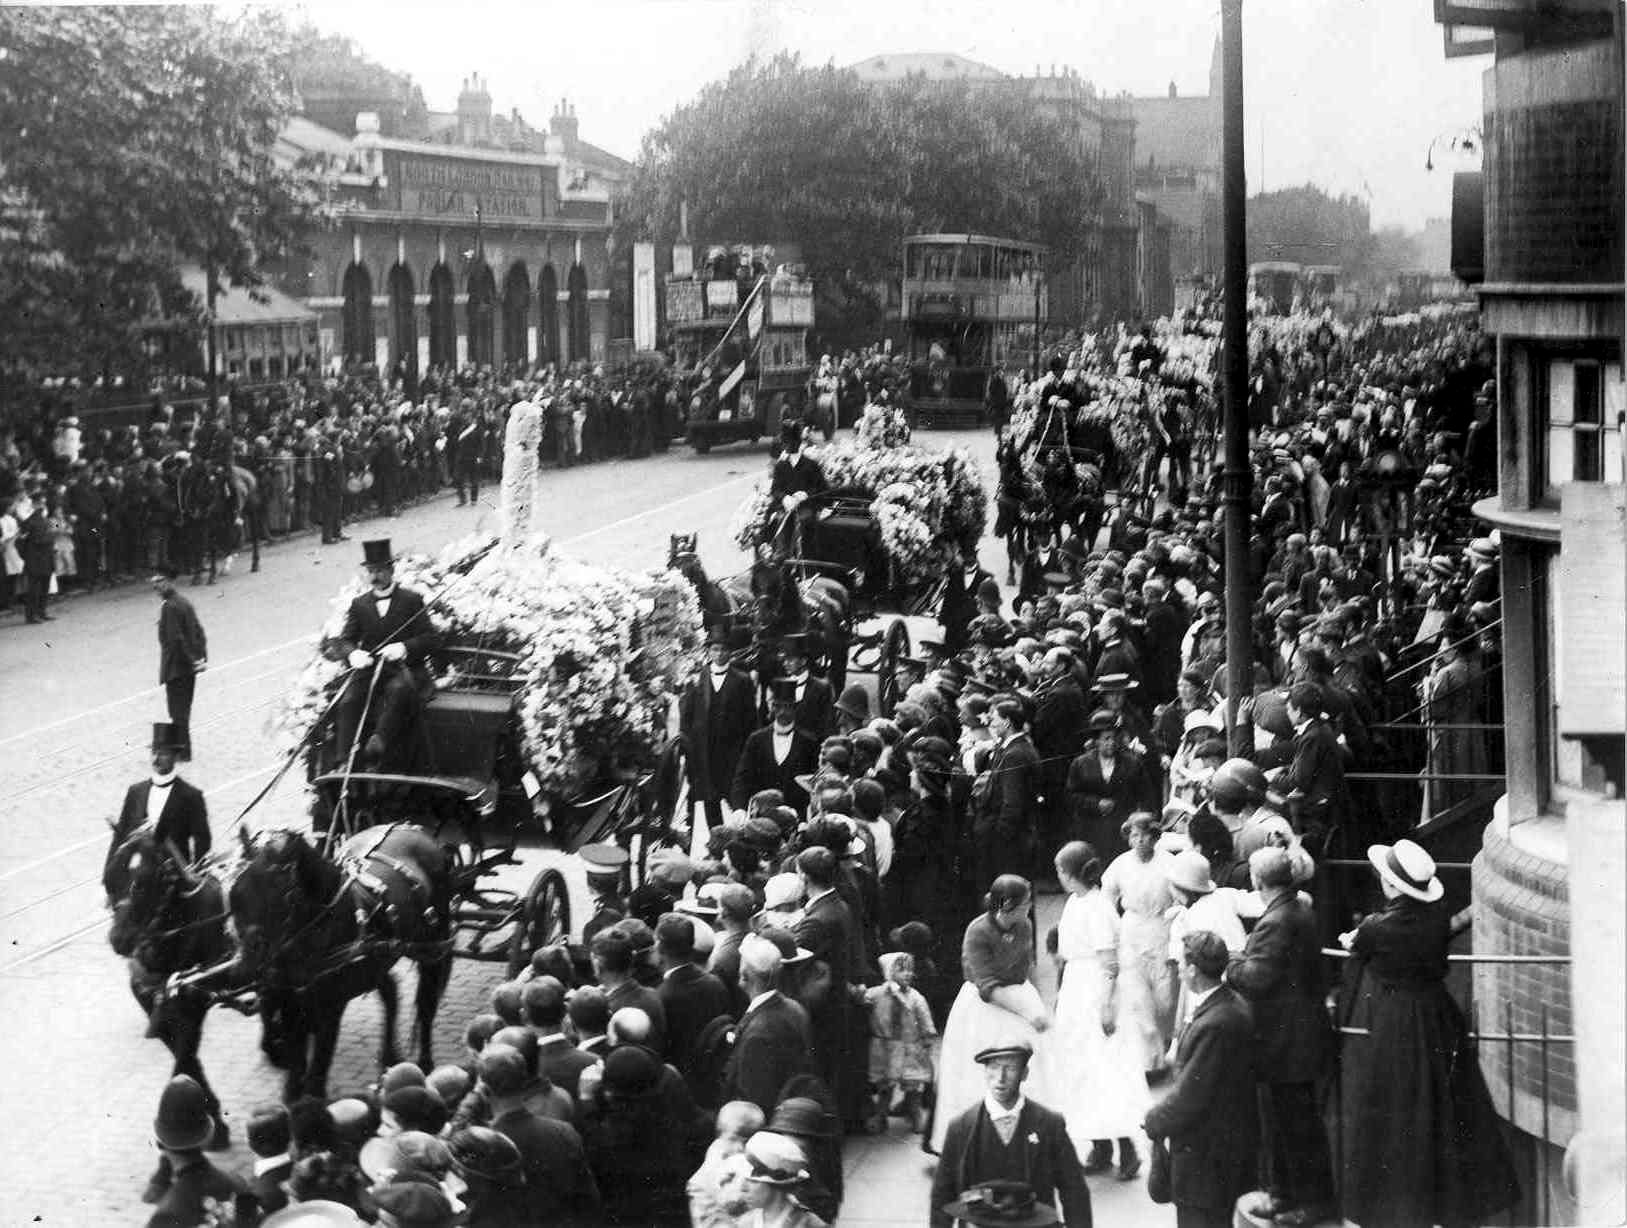 Funeral of the 18 children killed at the Upper North Street School, 20 Jun 1917_ The cortege passing along East India Dock Road